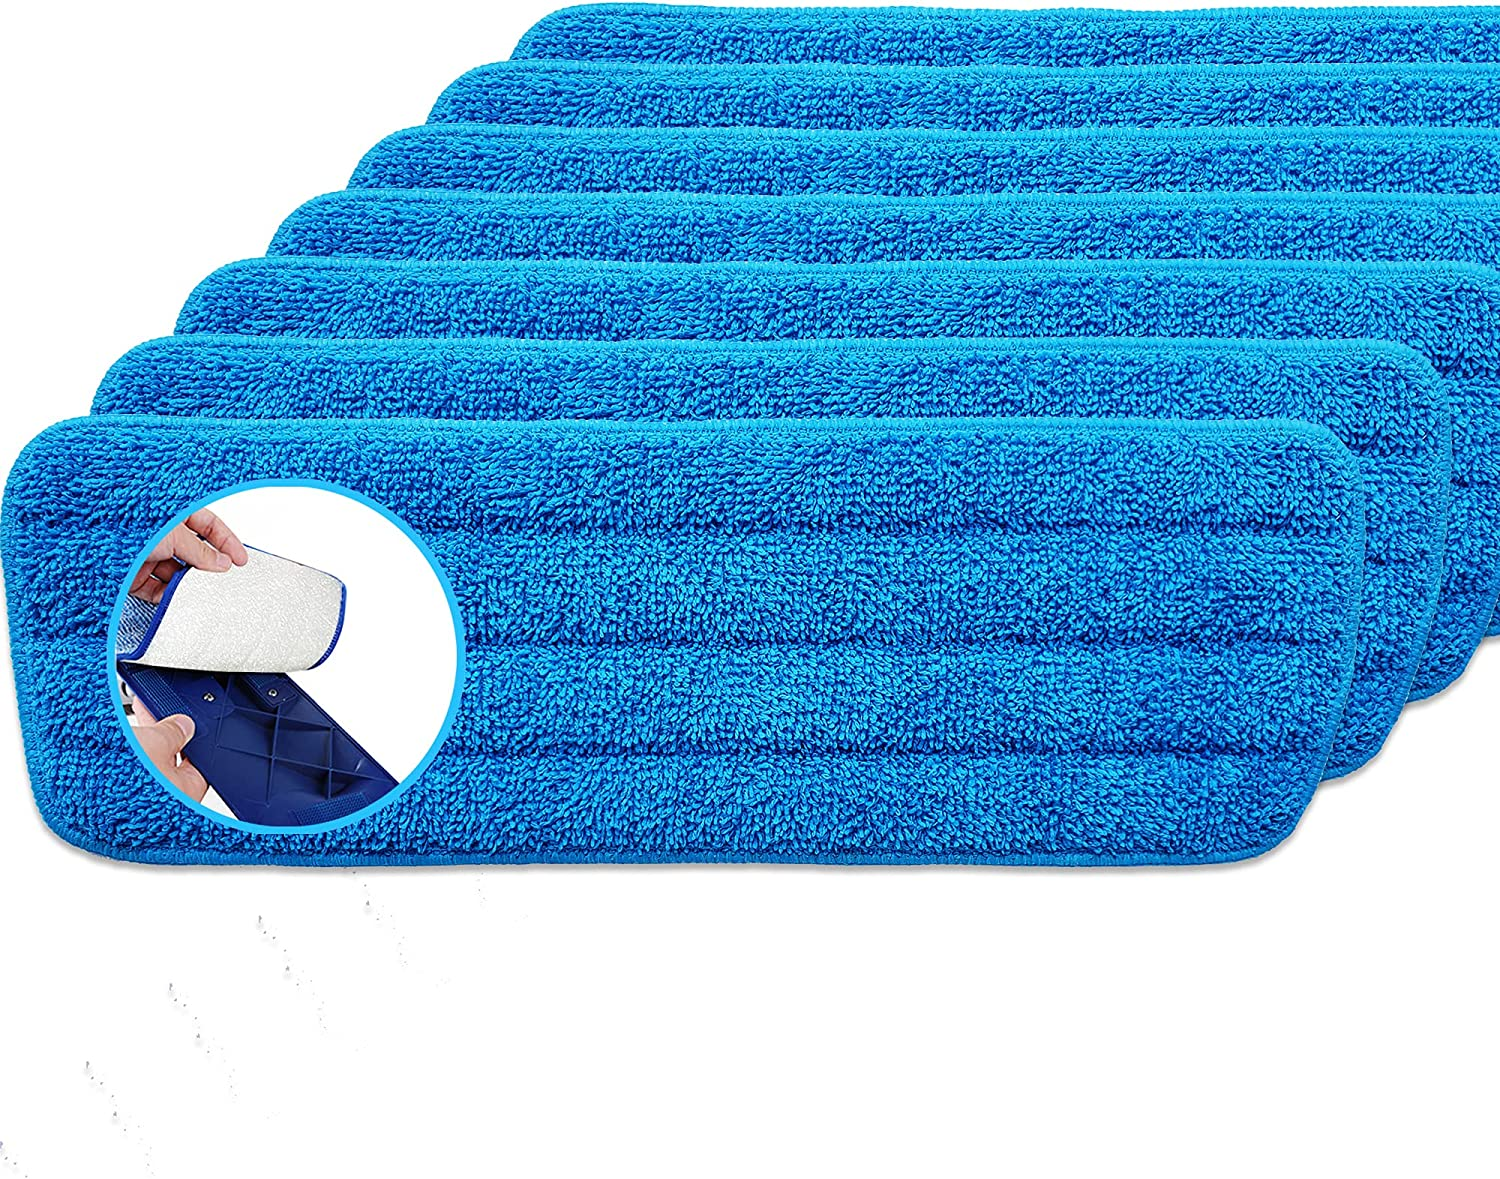 Reusable Minneapolis Mall Mop Pads 7 Pack Compatible Care with Bona Floor Ranking integrated 1st place System